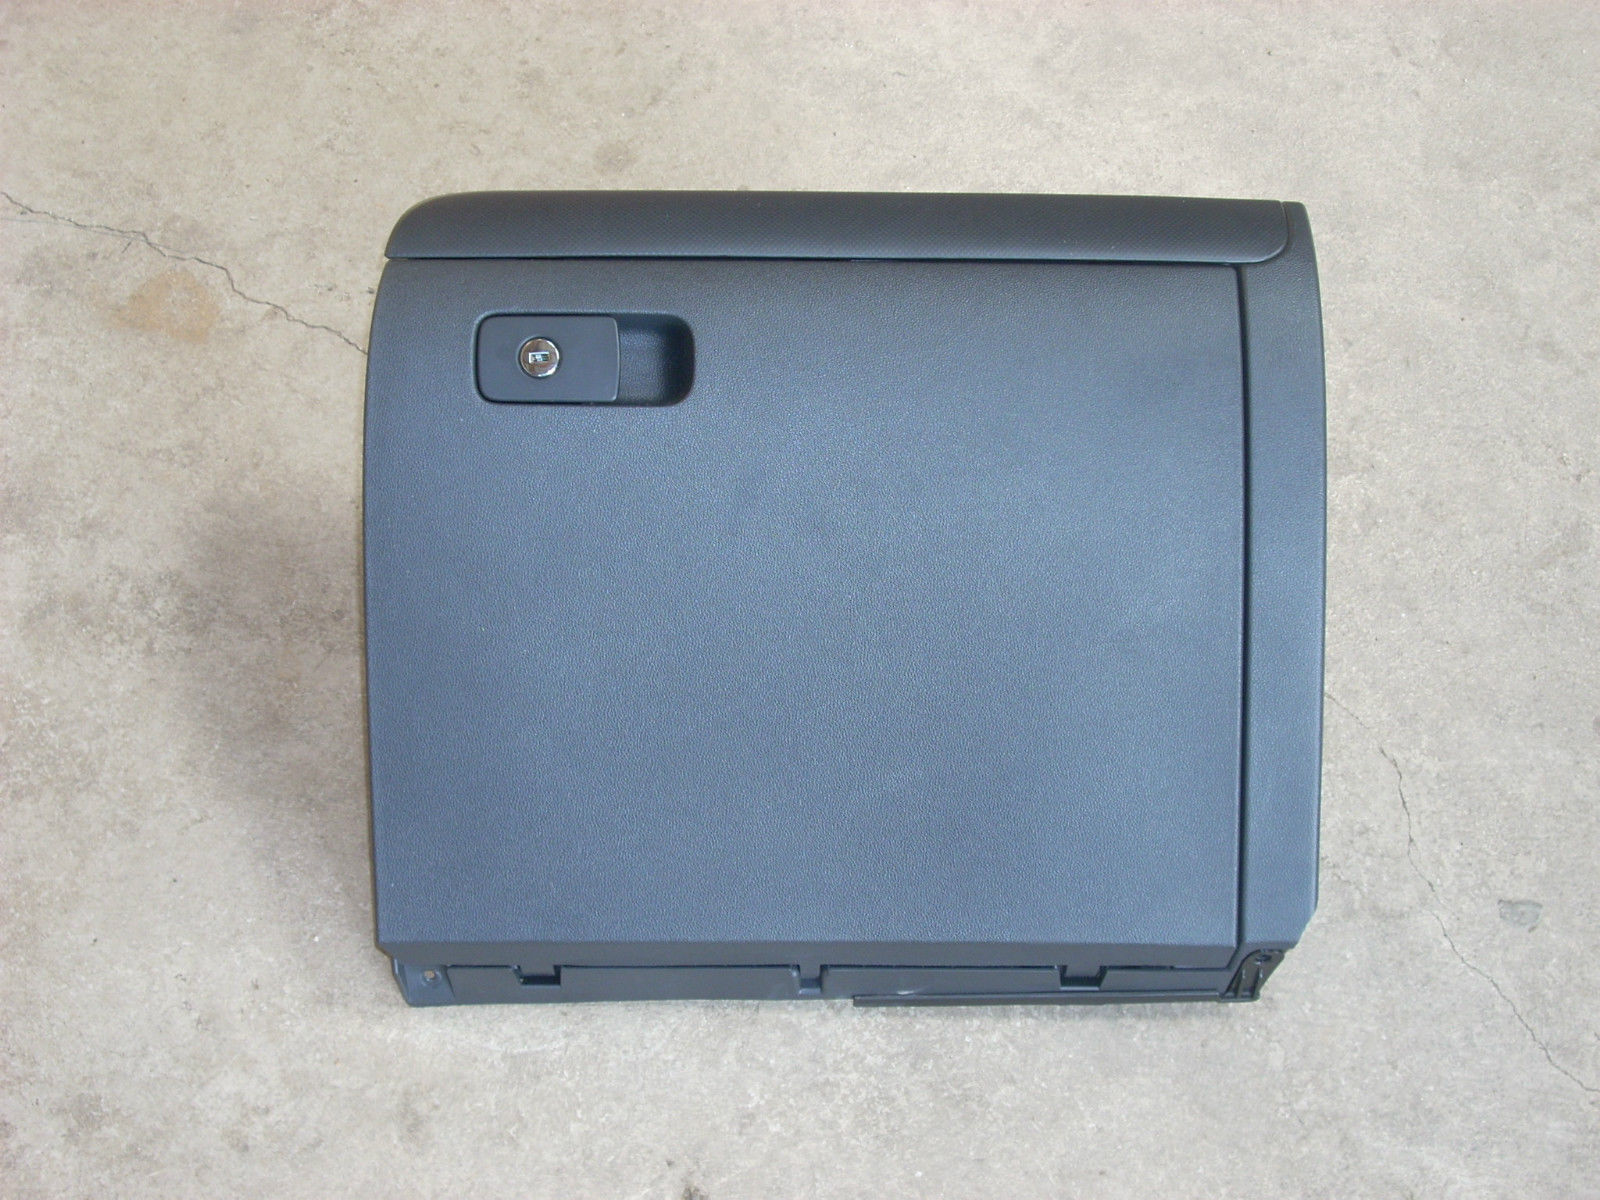 2011 VW JETTA GLOVE BOX DOOR